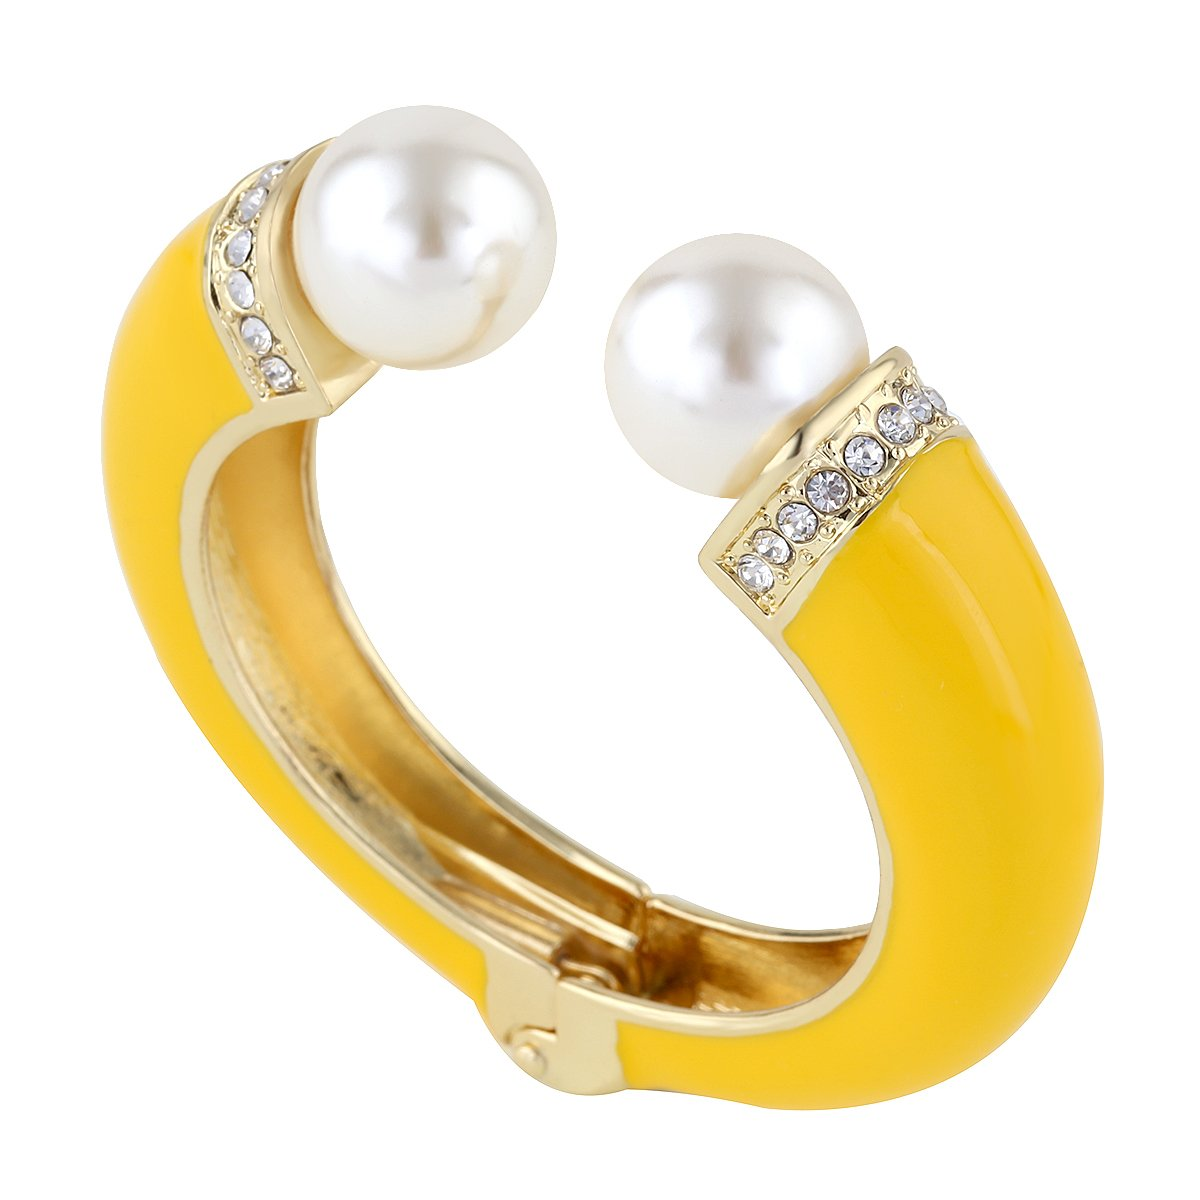 Golden Enamel Bangle Bracelets Inlay Pearls and Rhinestone For Prom, Party, Office Diameter 2.28 Inch